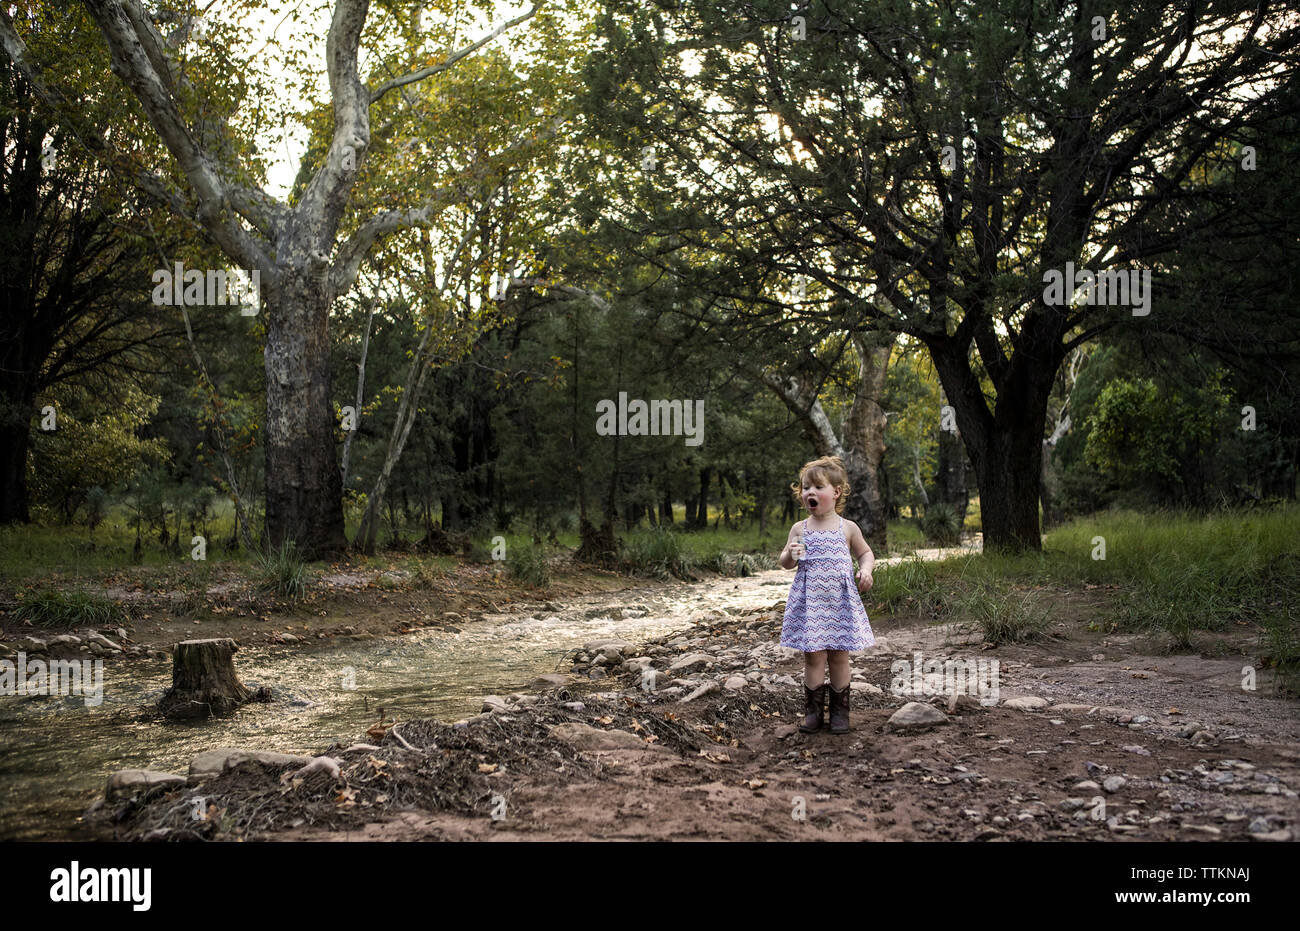 Curieux Girl standing by stream contre des arbres à forest Photo Stock